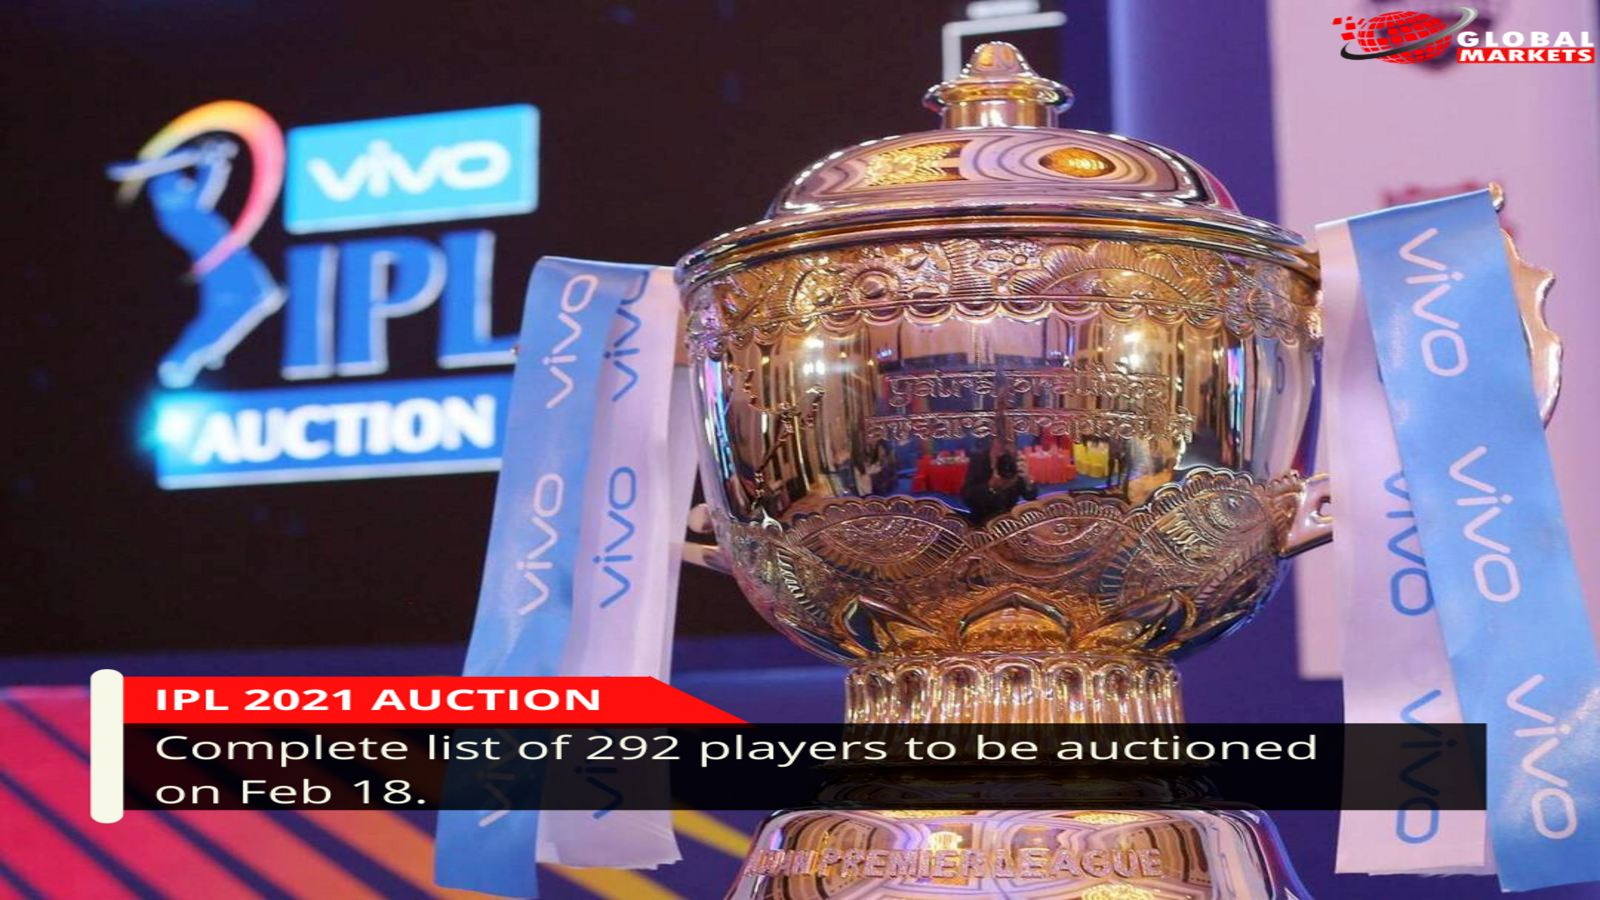 IPL 2021 auction: Complete list of 292 players to be auctioned on Feb 18.